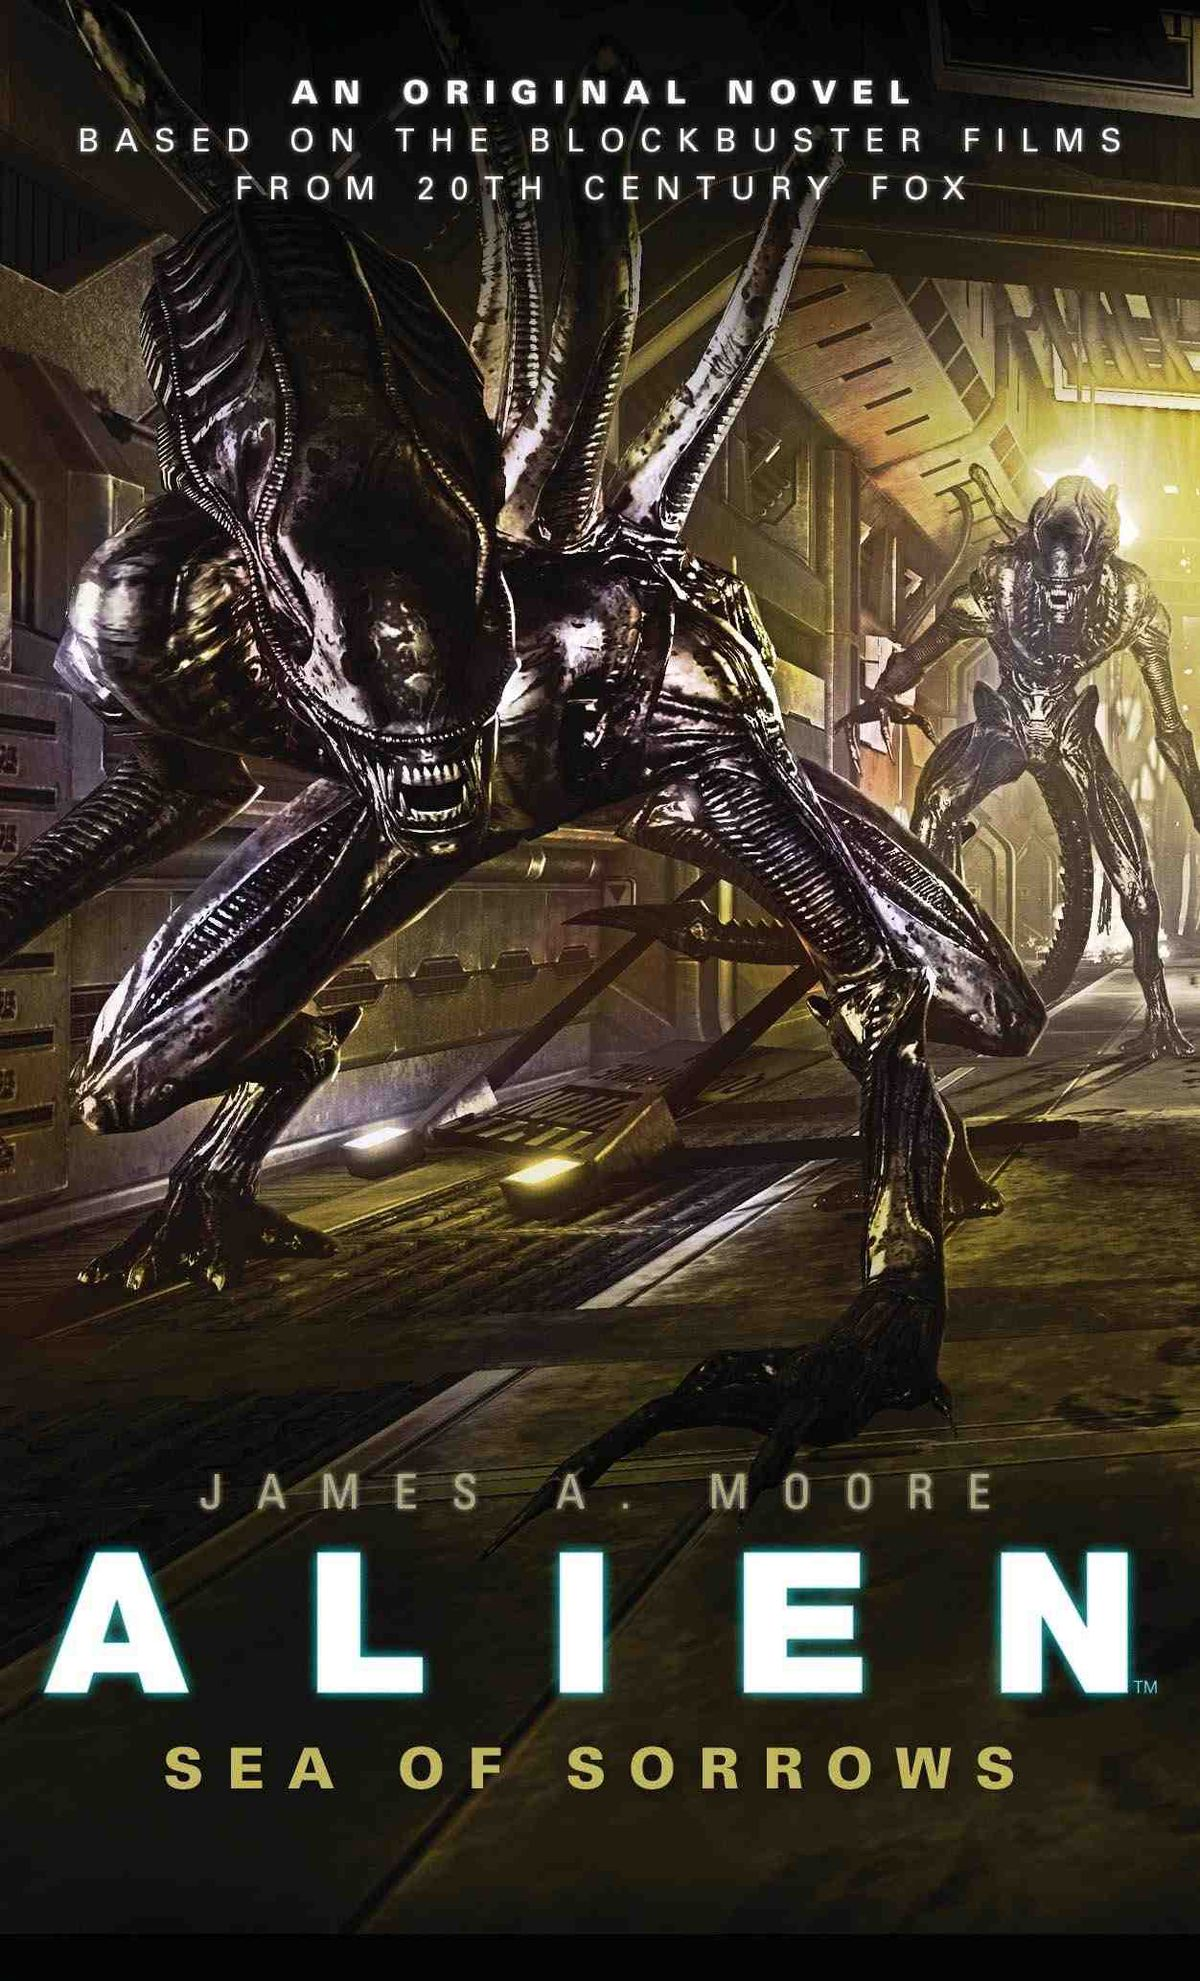 The cover of James A.Moore's Alien: Sea of Sorrows, showing two Xenomorphs in a hallway